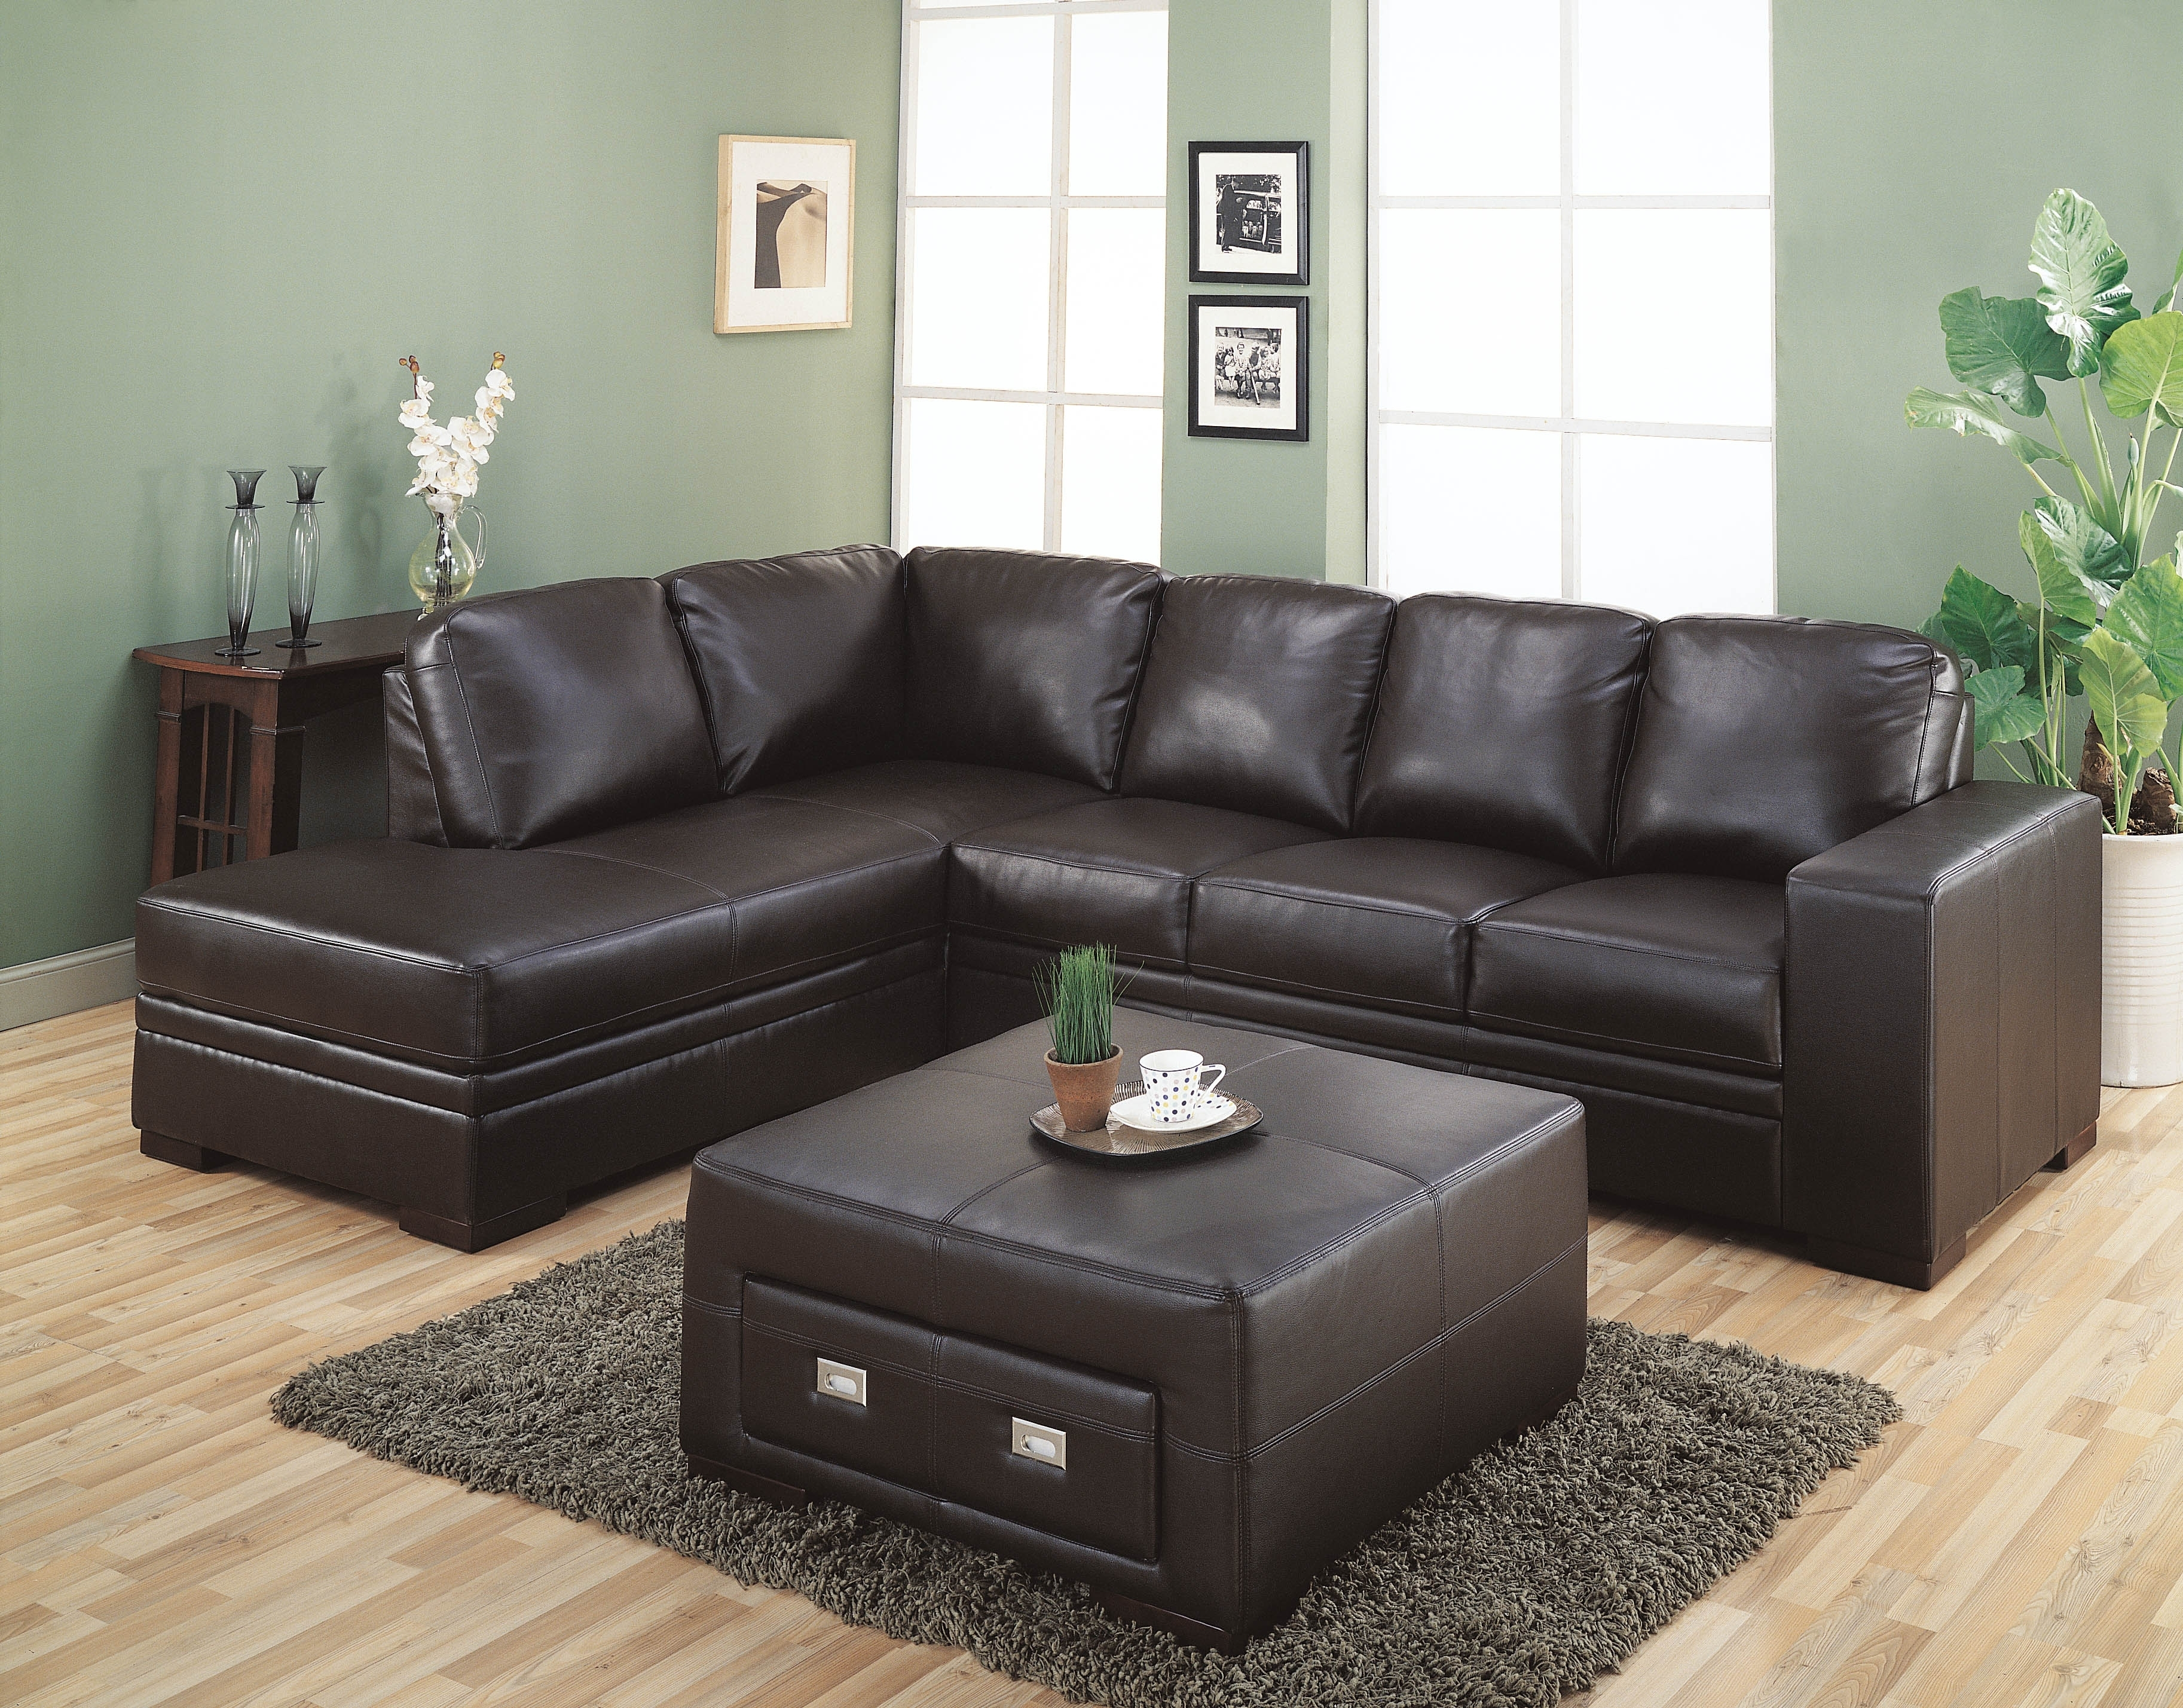 Sofa Leather Sectional Sofas Collection Of Brown Black Couch For pertaining to Memphis Sectional Sofas (Image 10 of 10)